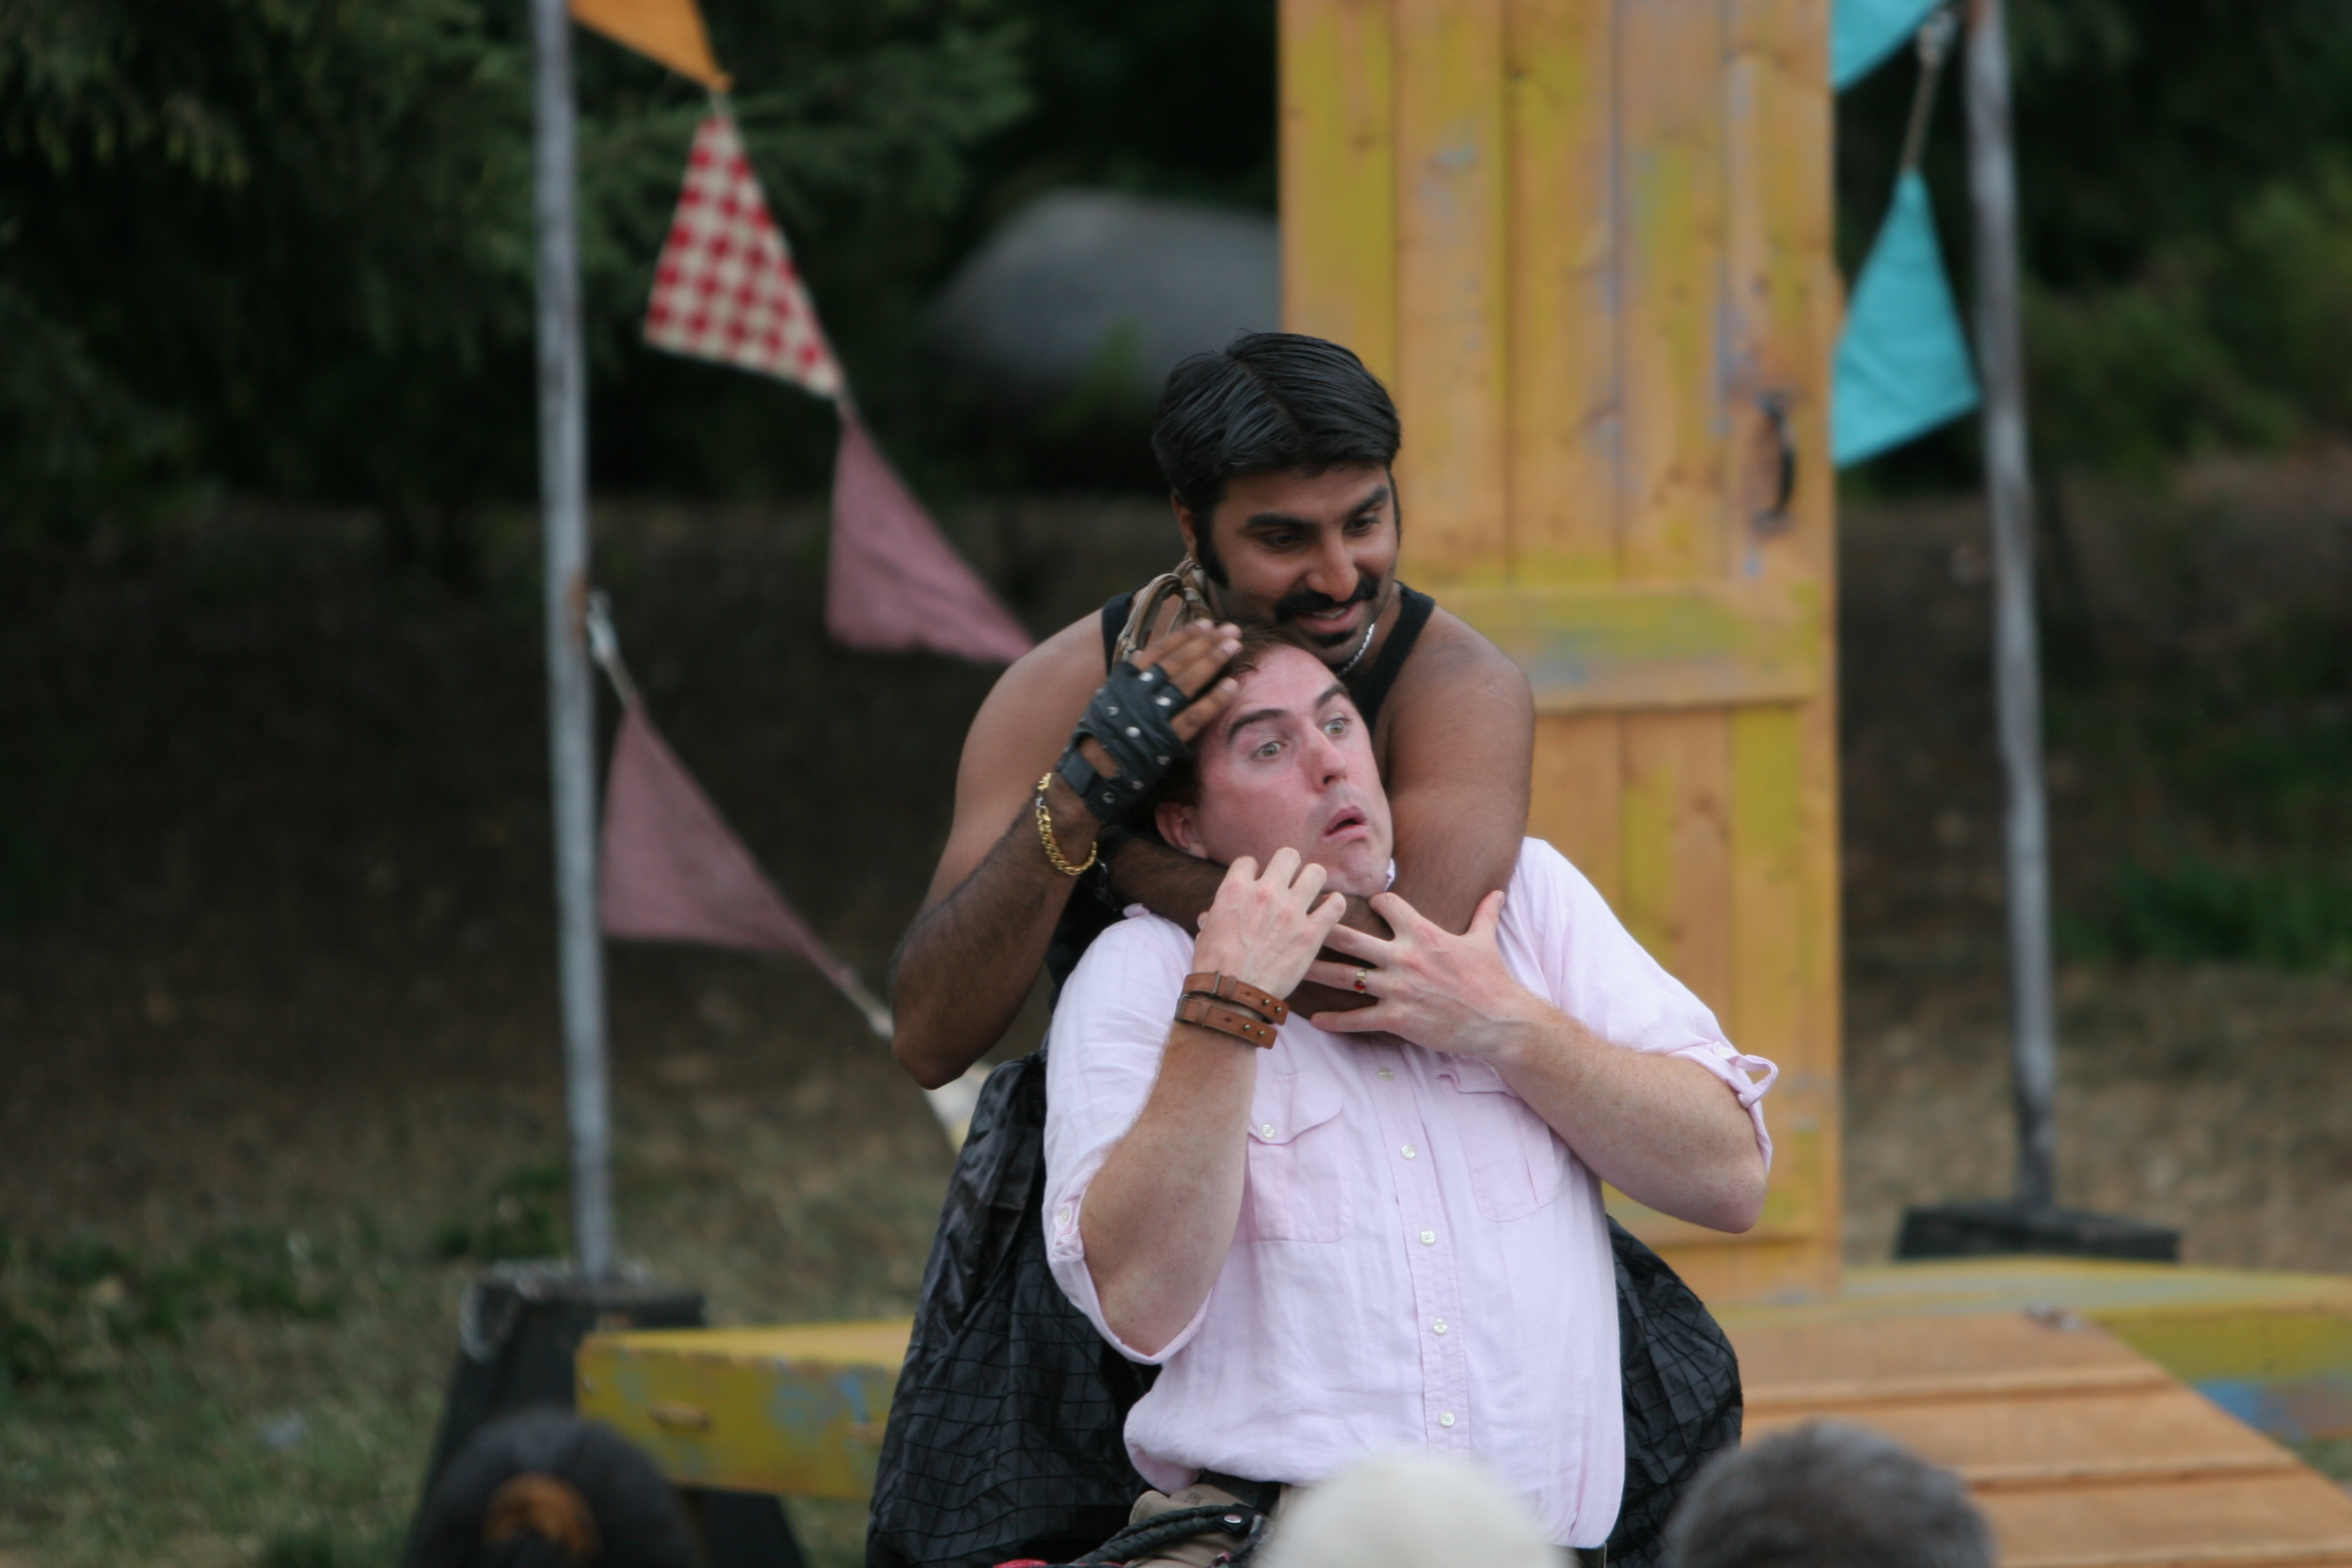 The Comedy of Errors  | Humber River Shakespeare | 2011